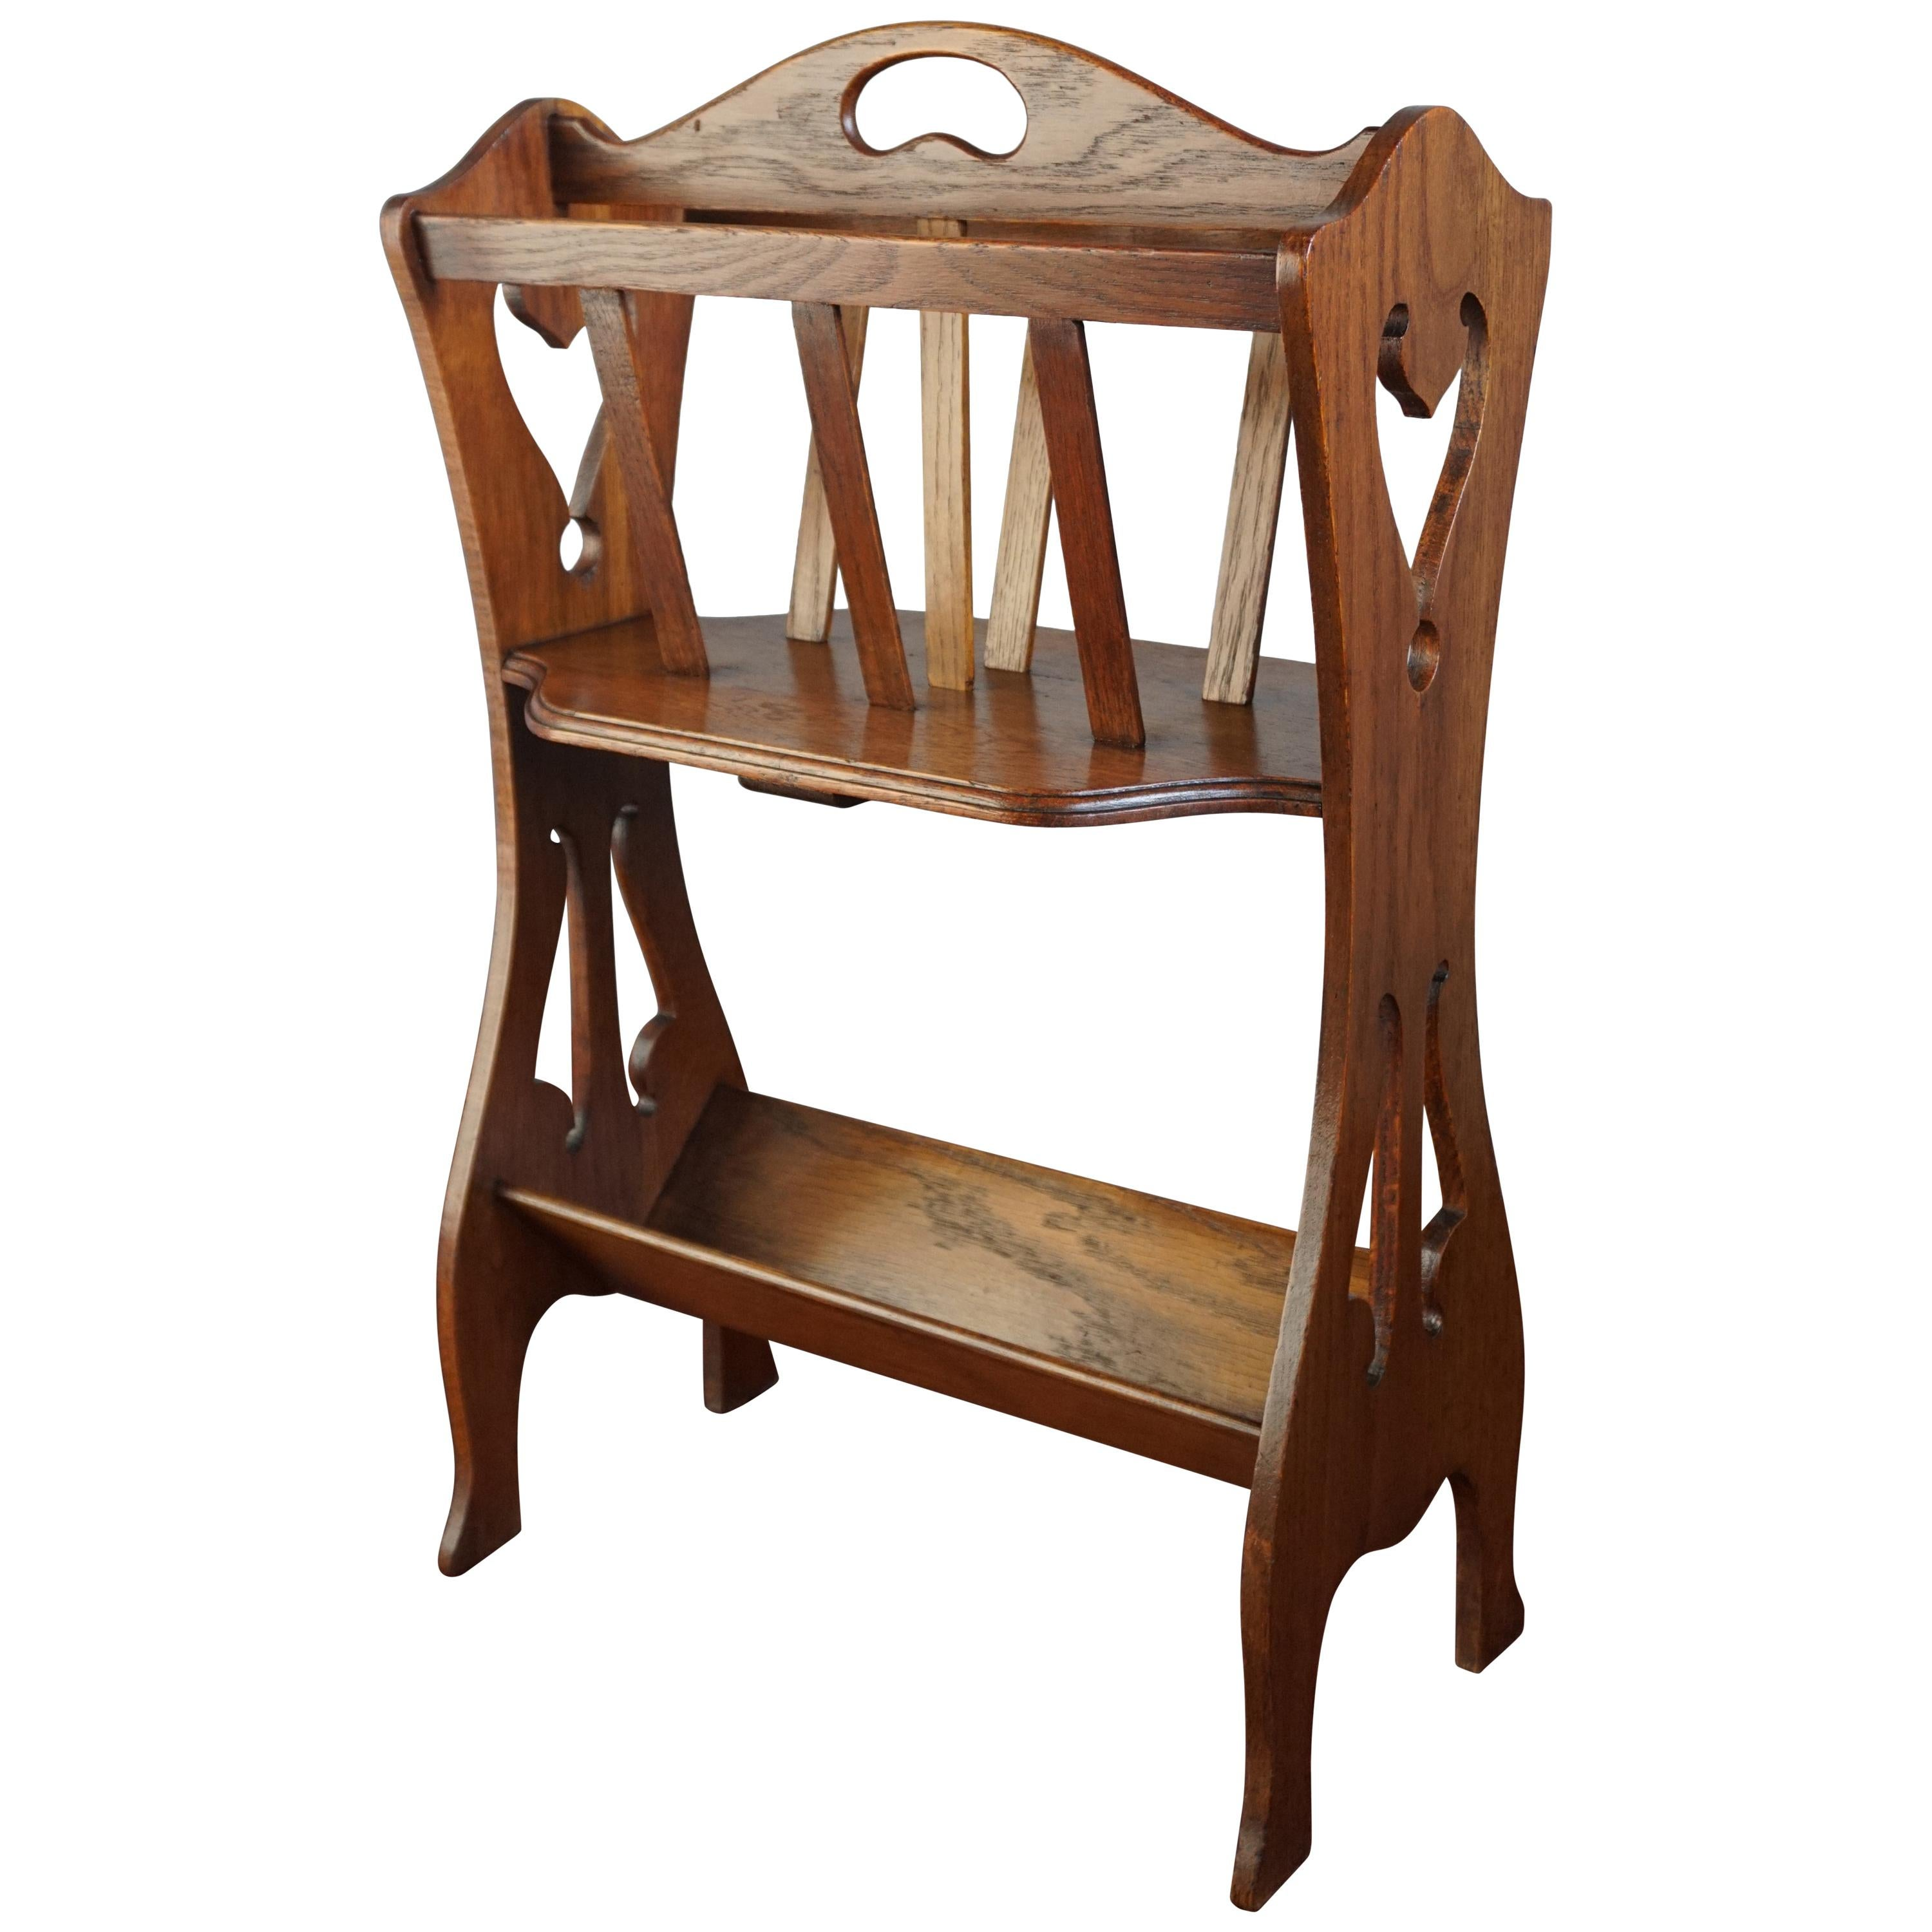 Great Looking 1910s Arts and Crafts Bookcase / Book Trough and Magazine Stand